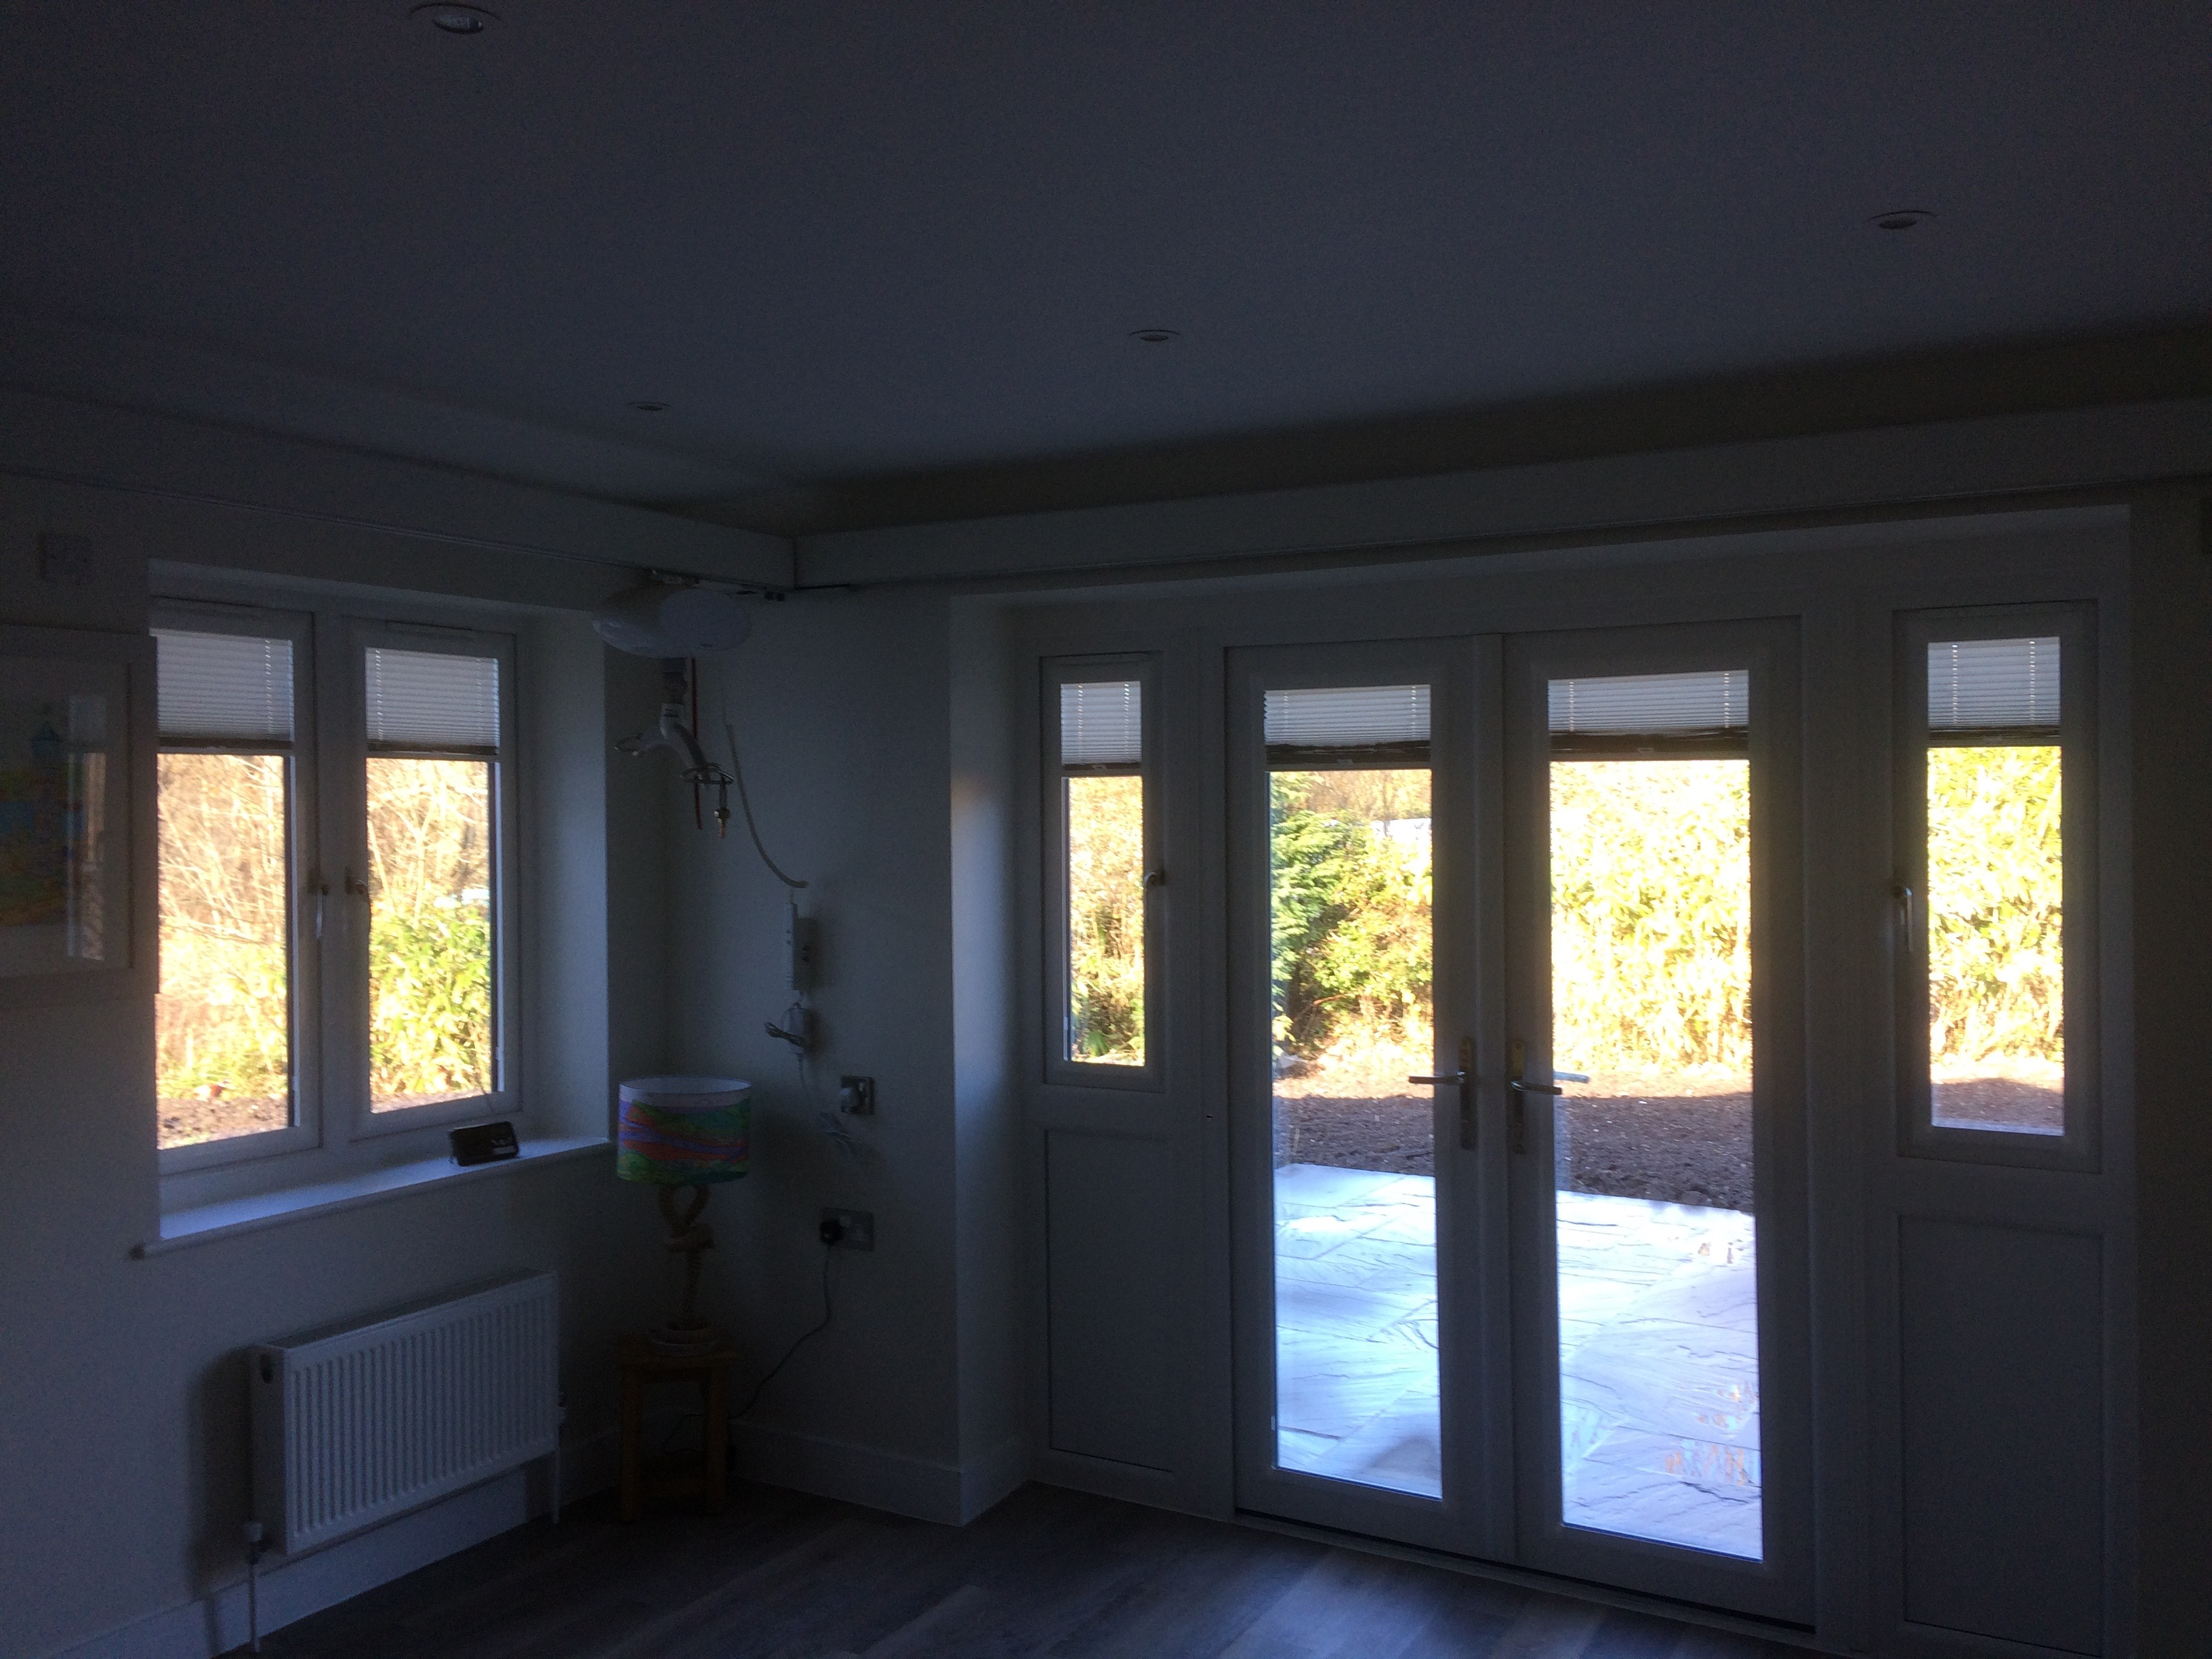 Over 40 Blinds in New Build Featured Image